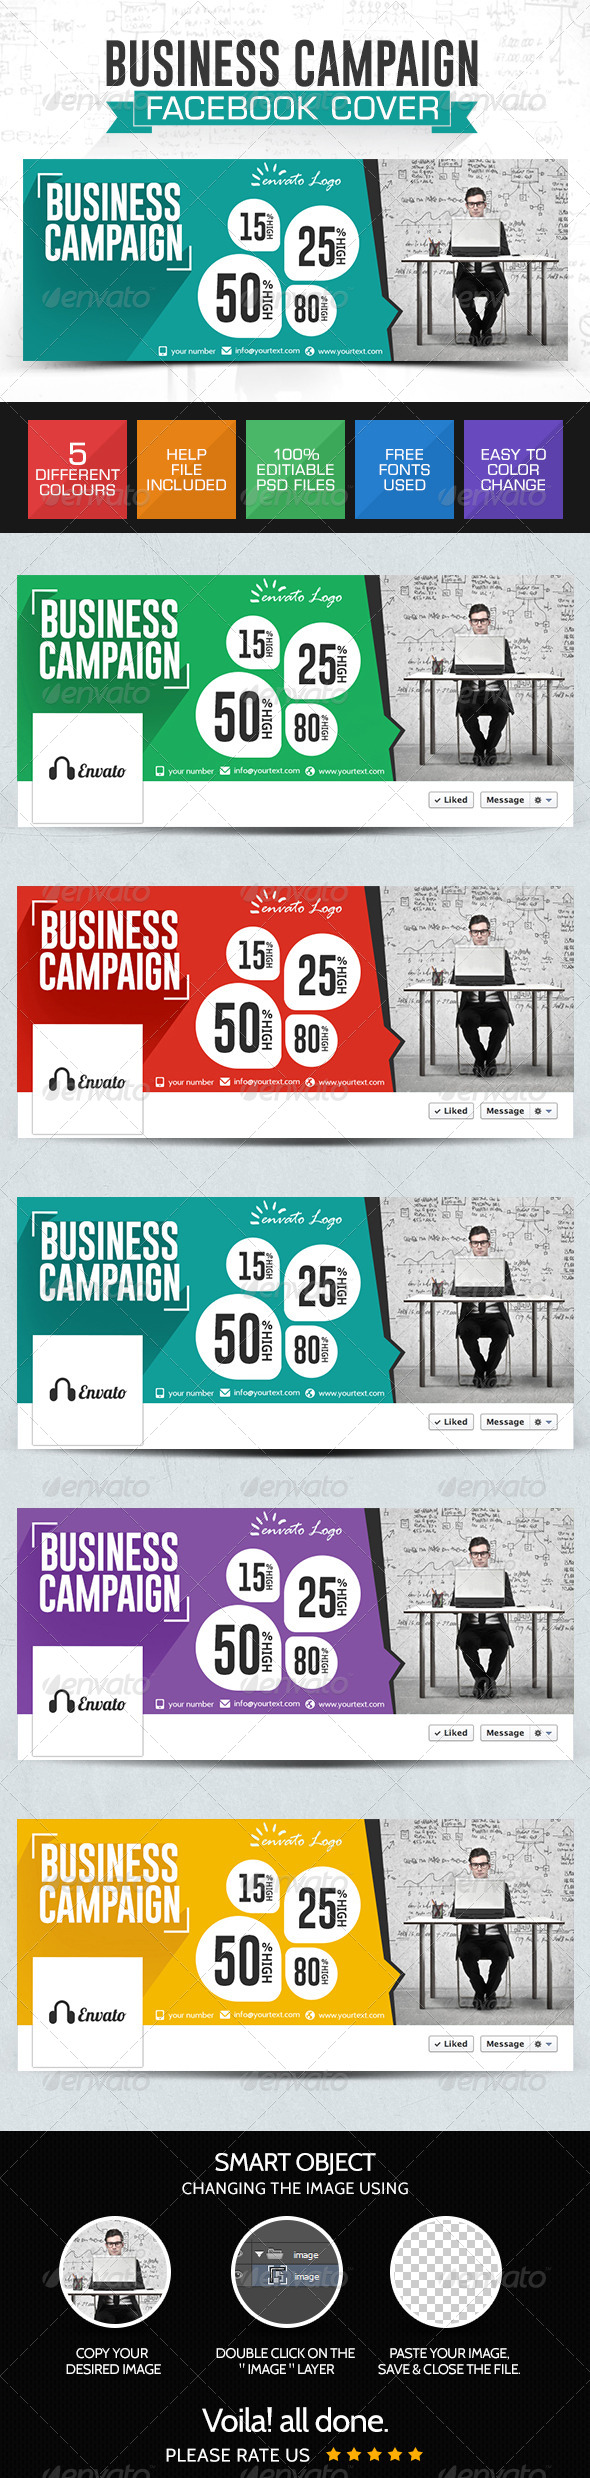 GraphicRiver Business Campaign Facebook Cover 7767699